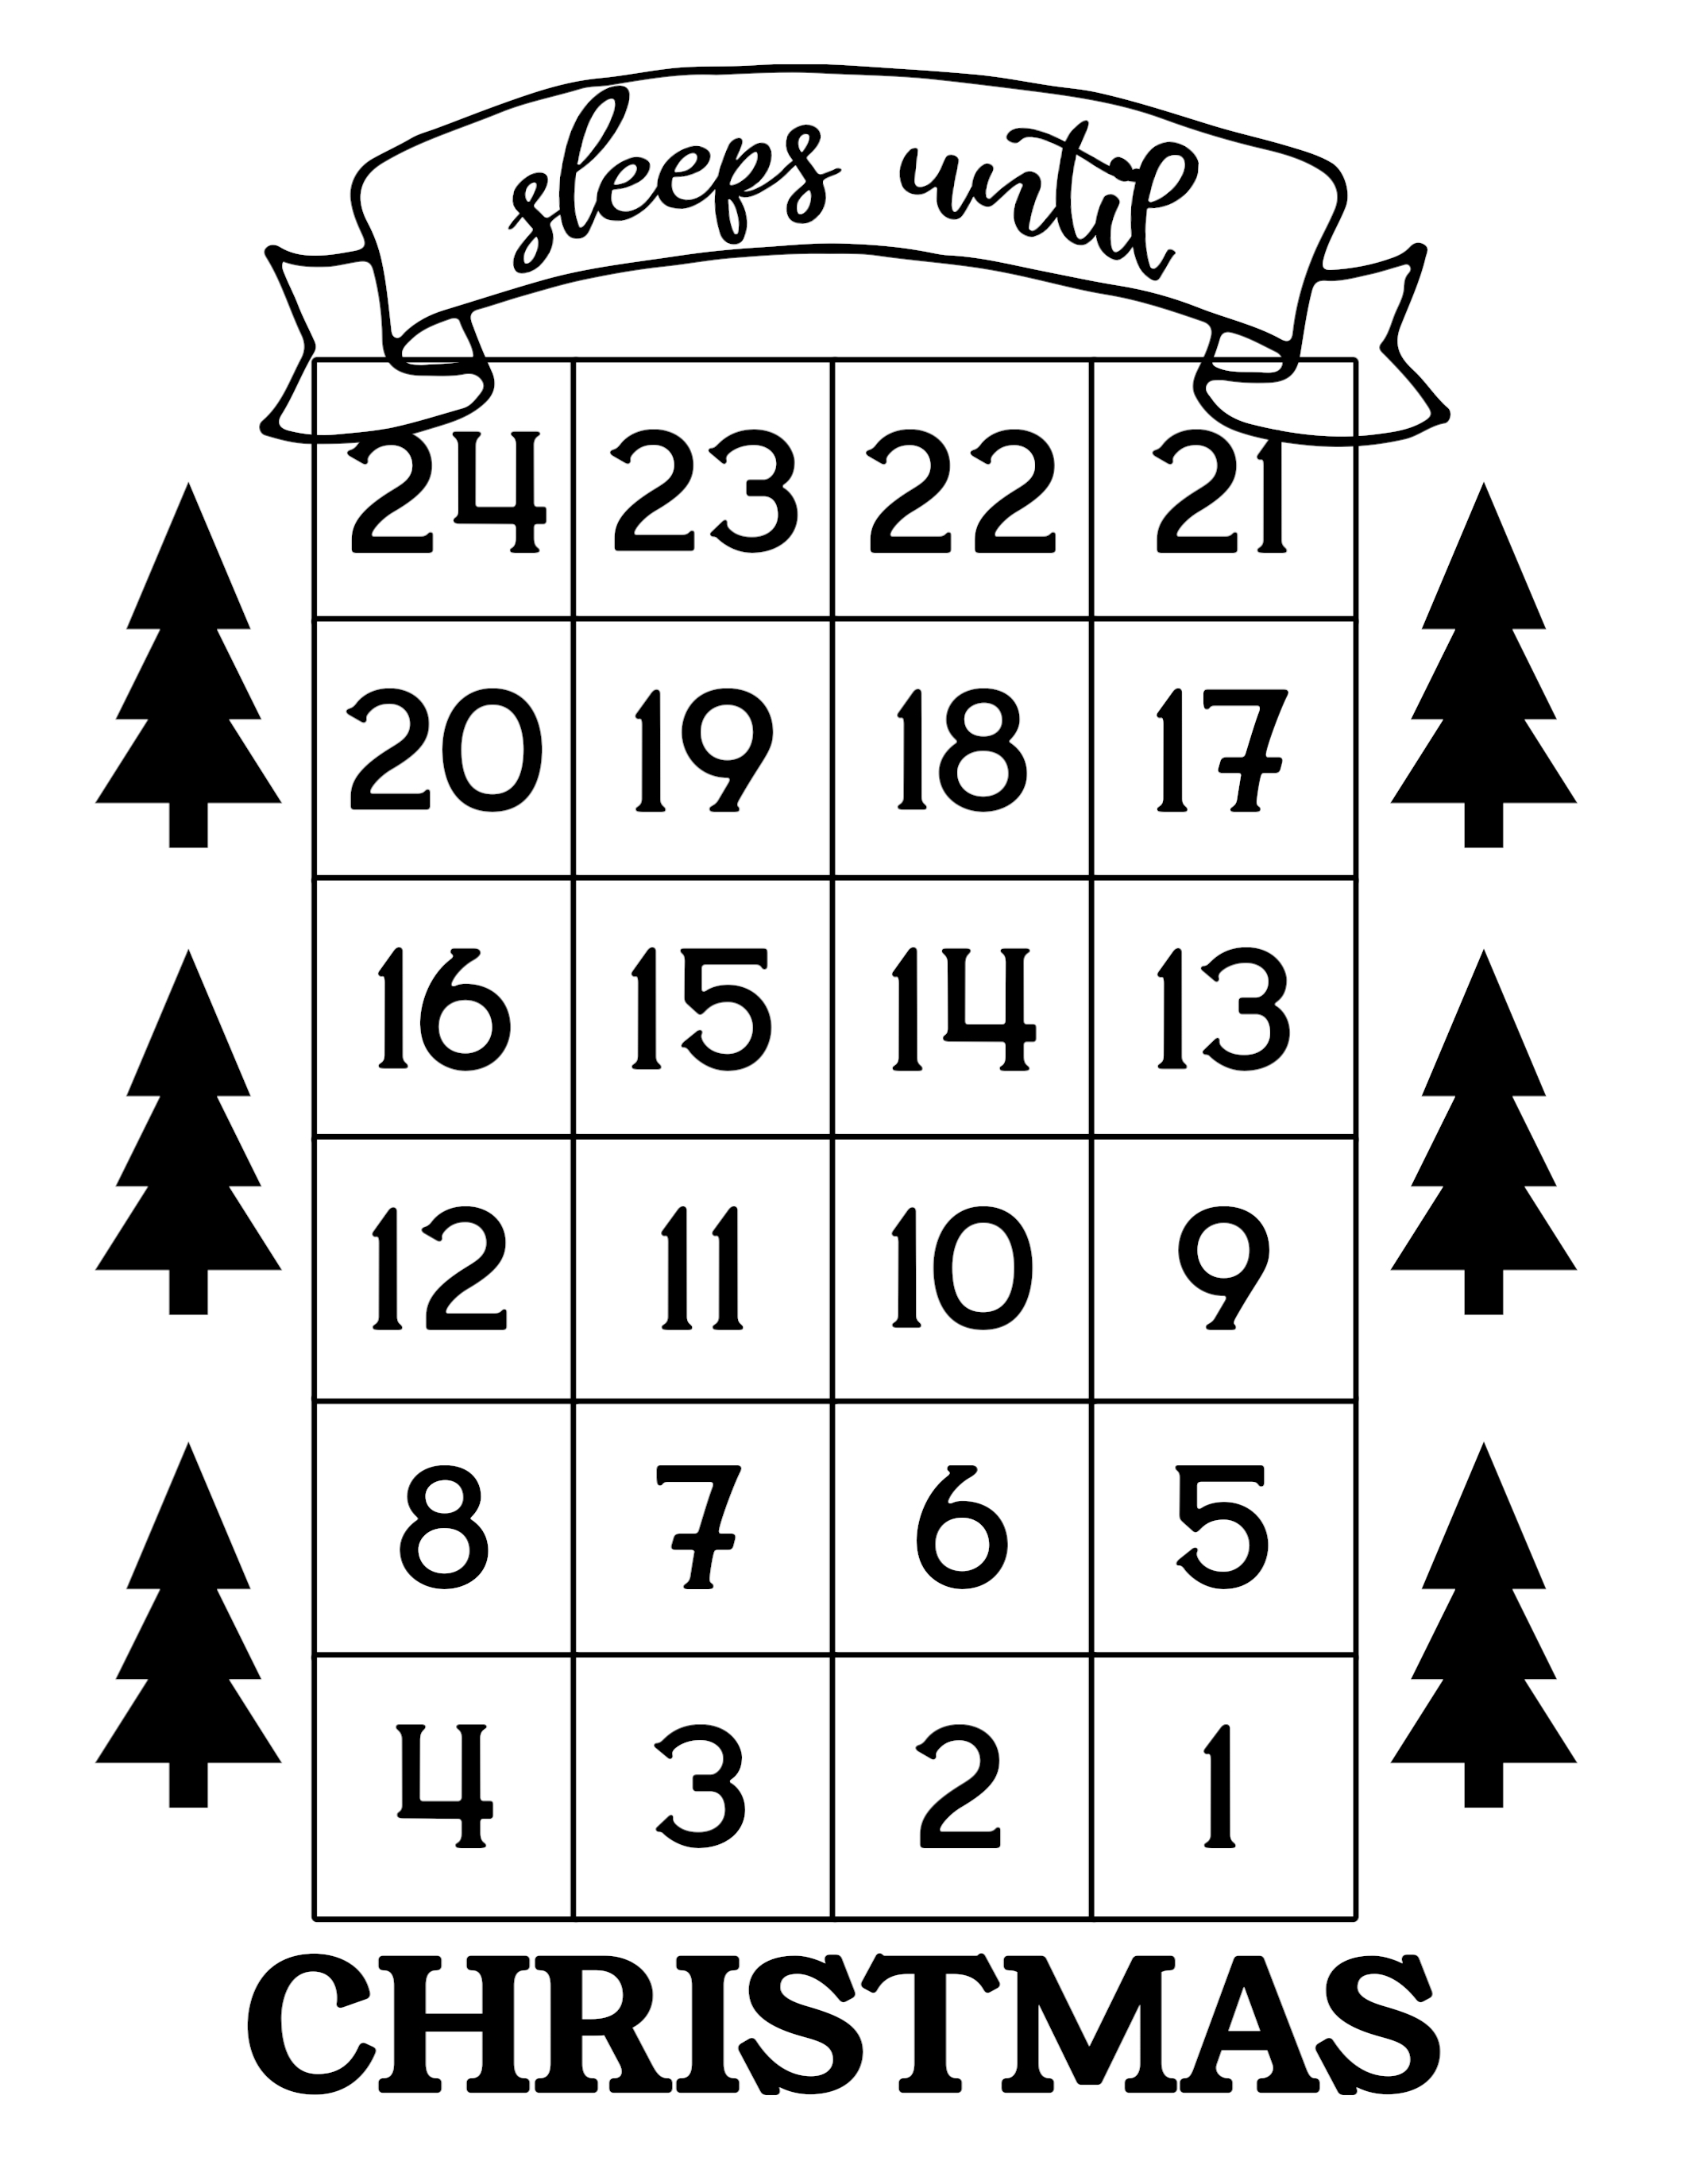 How Many Days Until Christmas Countdown.How Many Days Until Christmas Free Printable Paper Trail